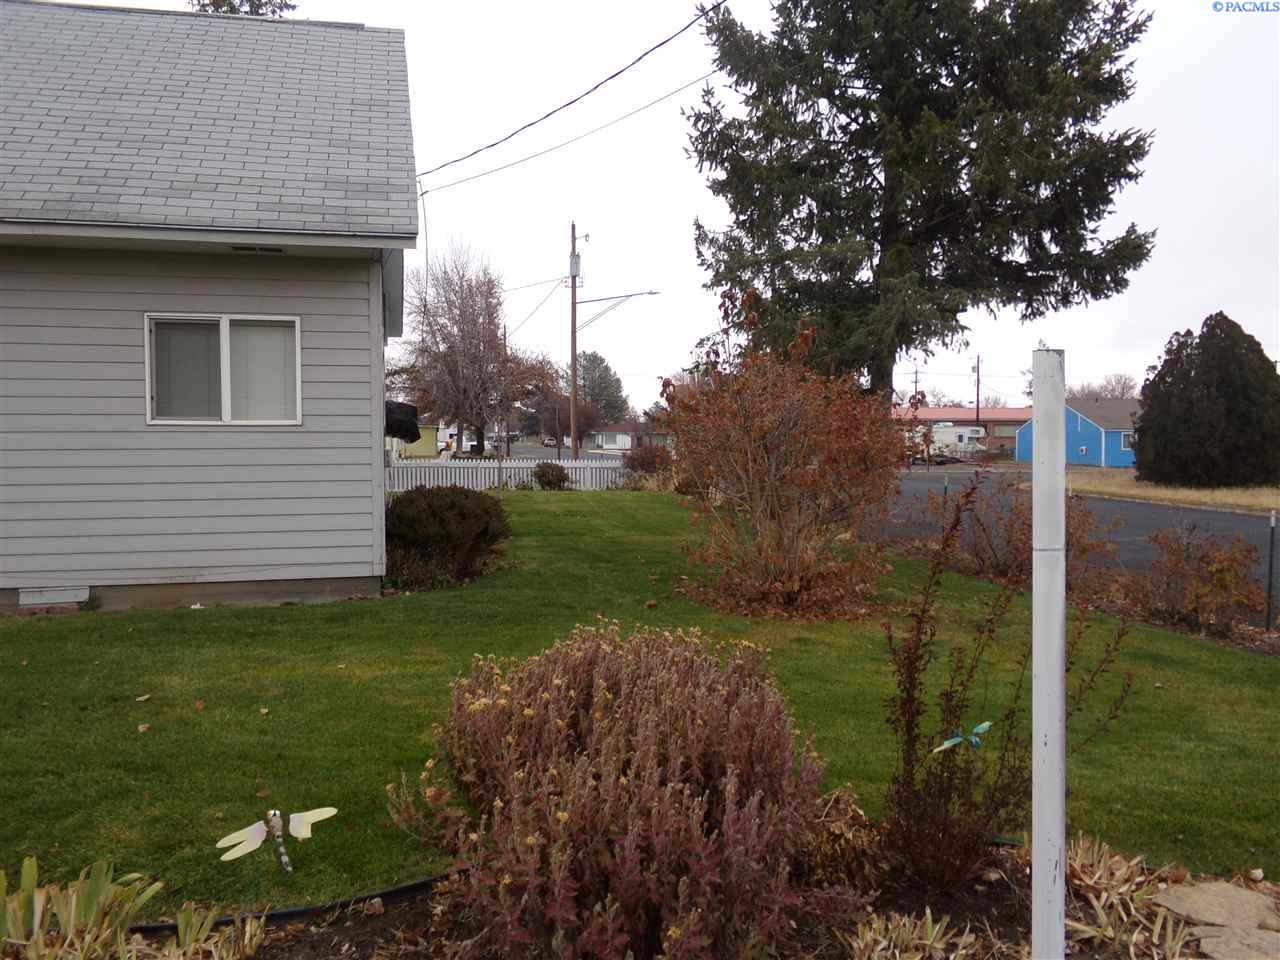 Additional photo for property listing at 137 S Almira Connell, Washington 99326 United States